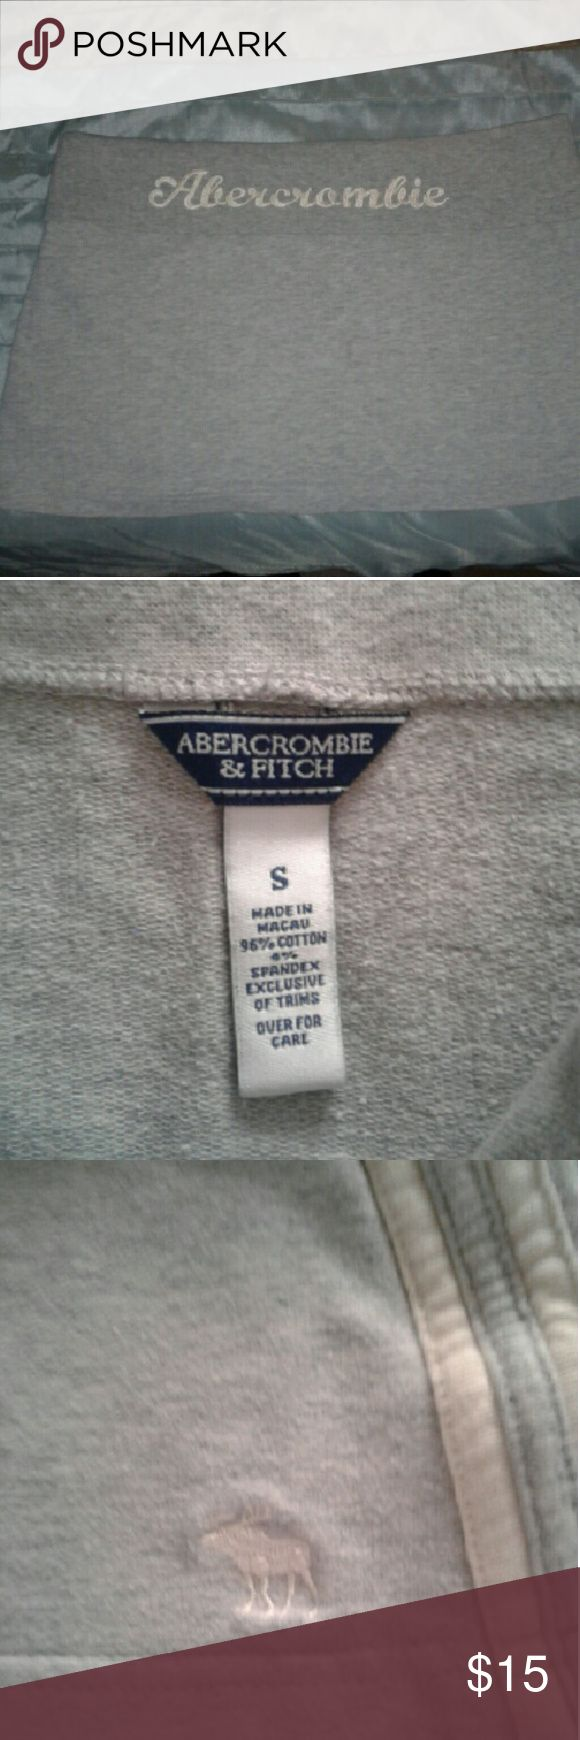 Abercrombie and Fitch Mini Skirt Gray Small Gray Abercrombie and Fitch Mini Skirt Size Small Cotton & Spandex Fold Down Top With Abercrombie on back of Skirt has set of Lines Down Both sides of Skirt. Pre-loved but Good Condition. Abercrombie & Fitch Skirts Mini